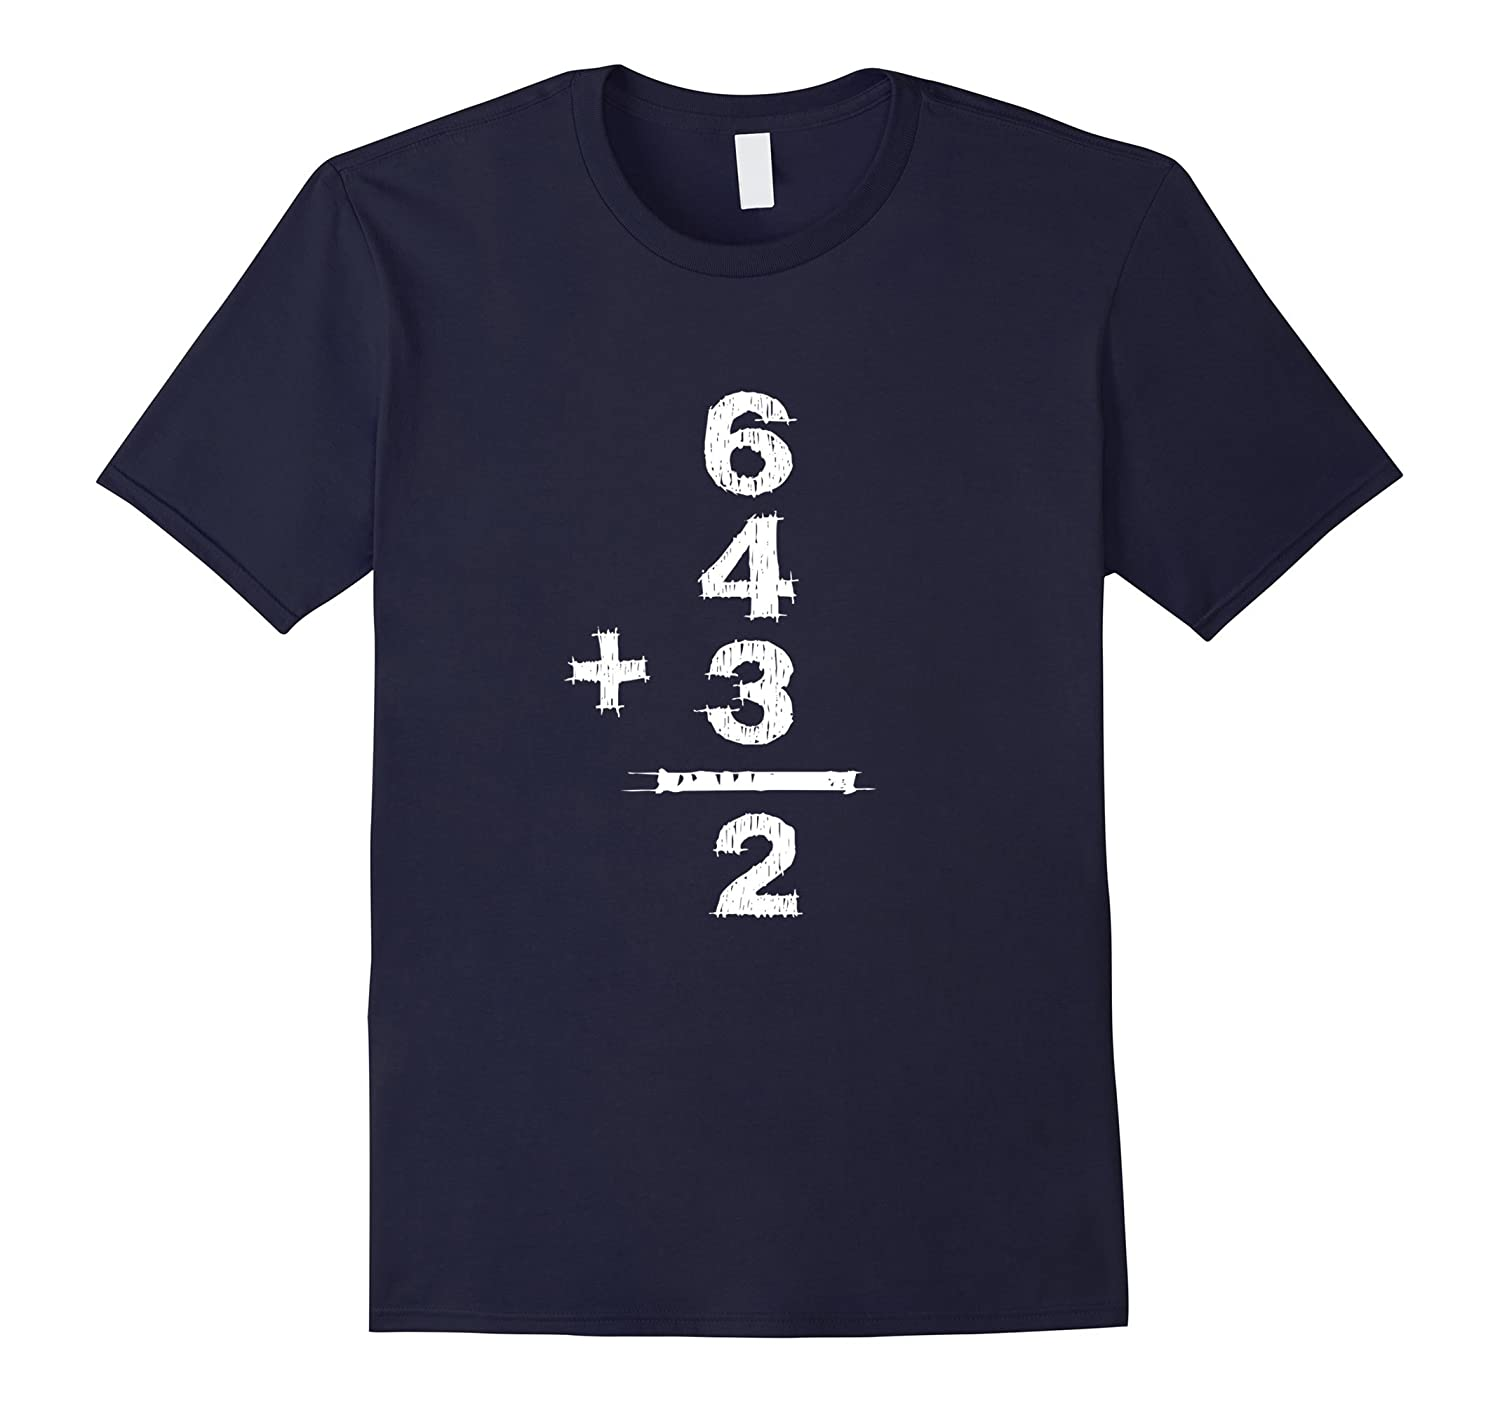 6 4 3 Double Play - Funny Baseball Shirt-TH